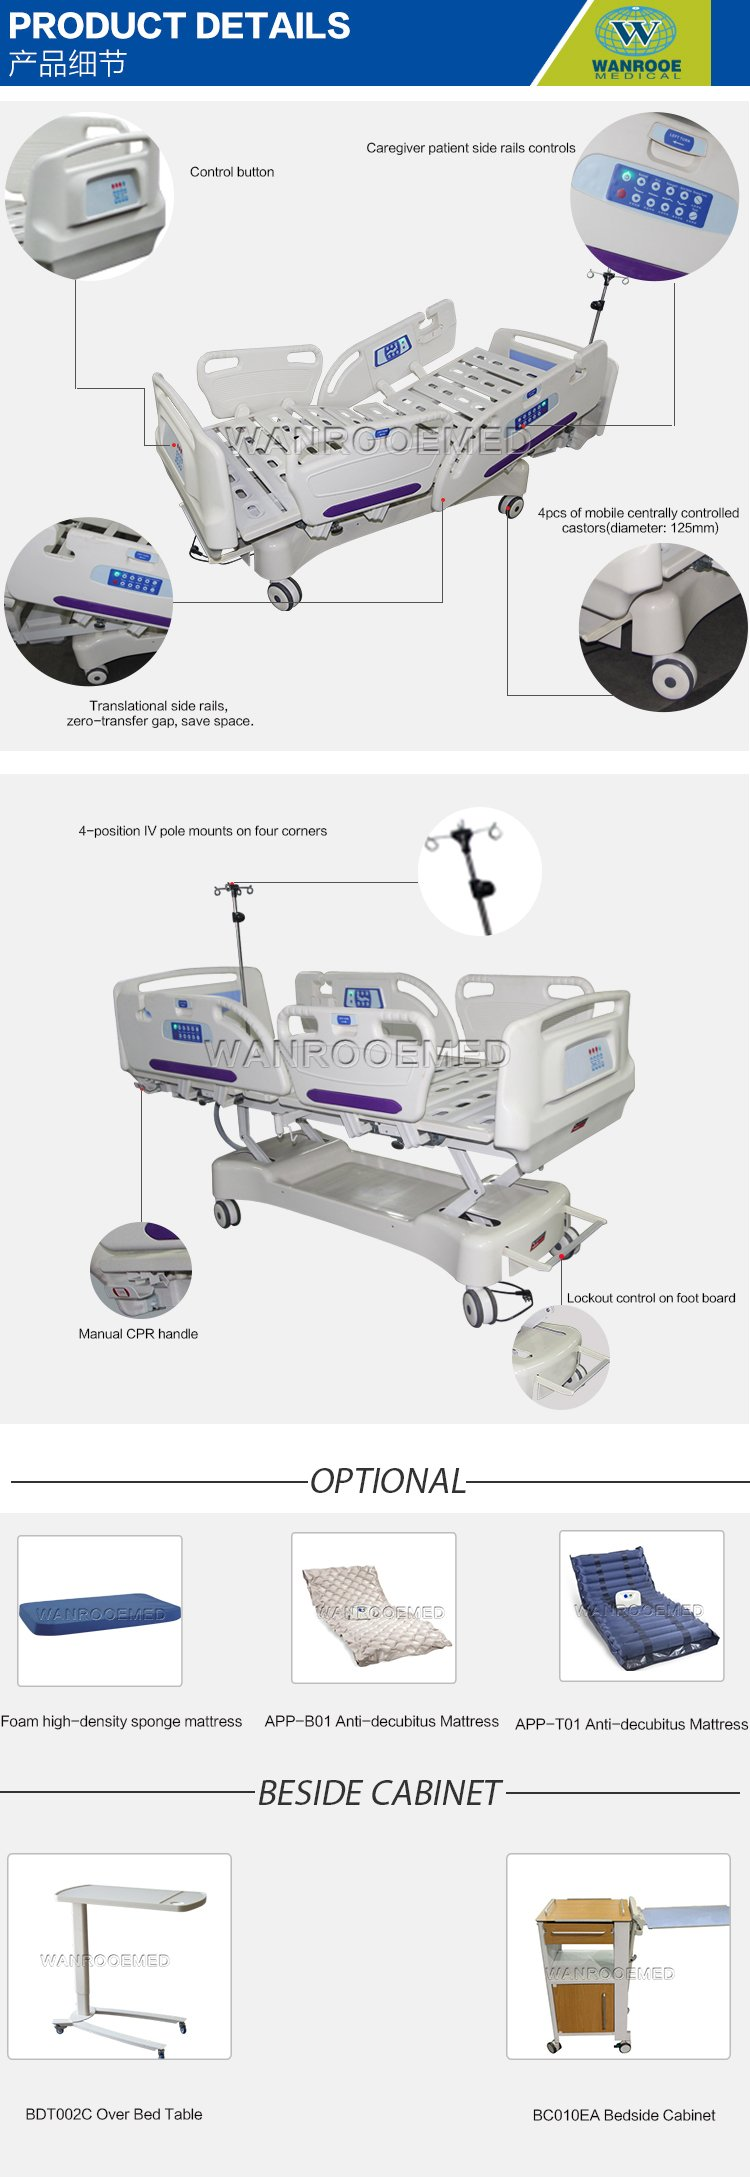 Hospital ICU Bed, Electric Patient Bed, Electric ICU Bed, ICU Patient Bed, Adjustable Electric Bed